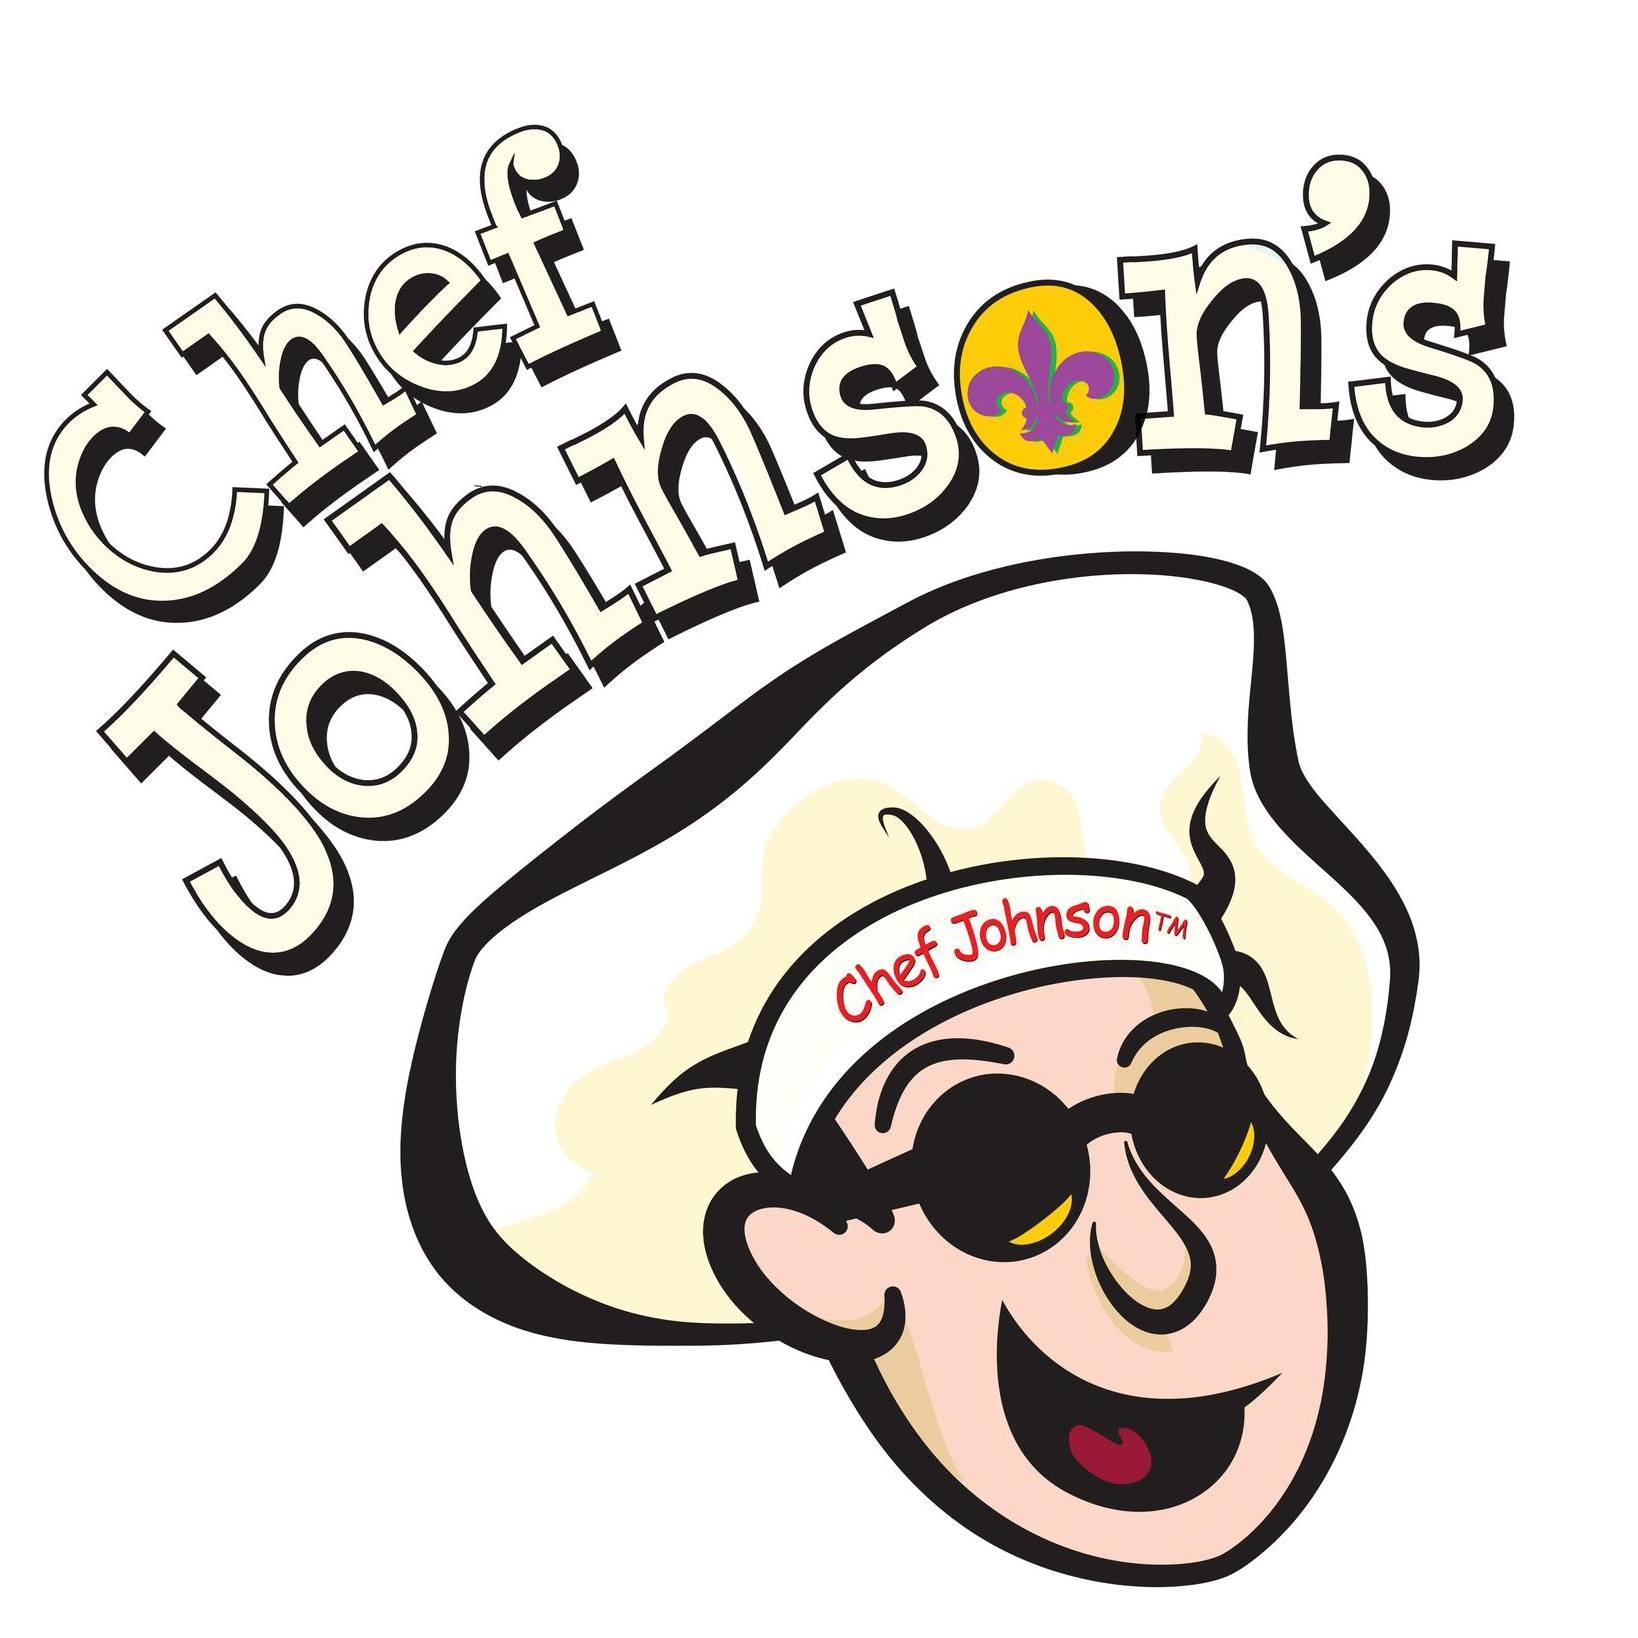 chef-johnsons-truck-nola.jpg